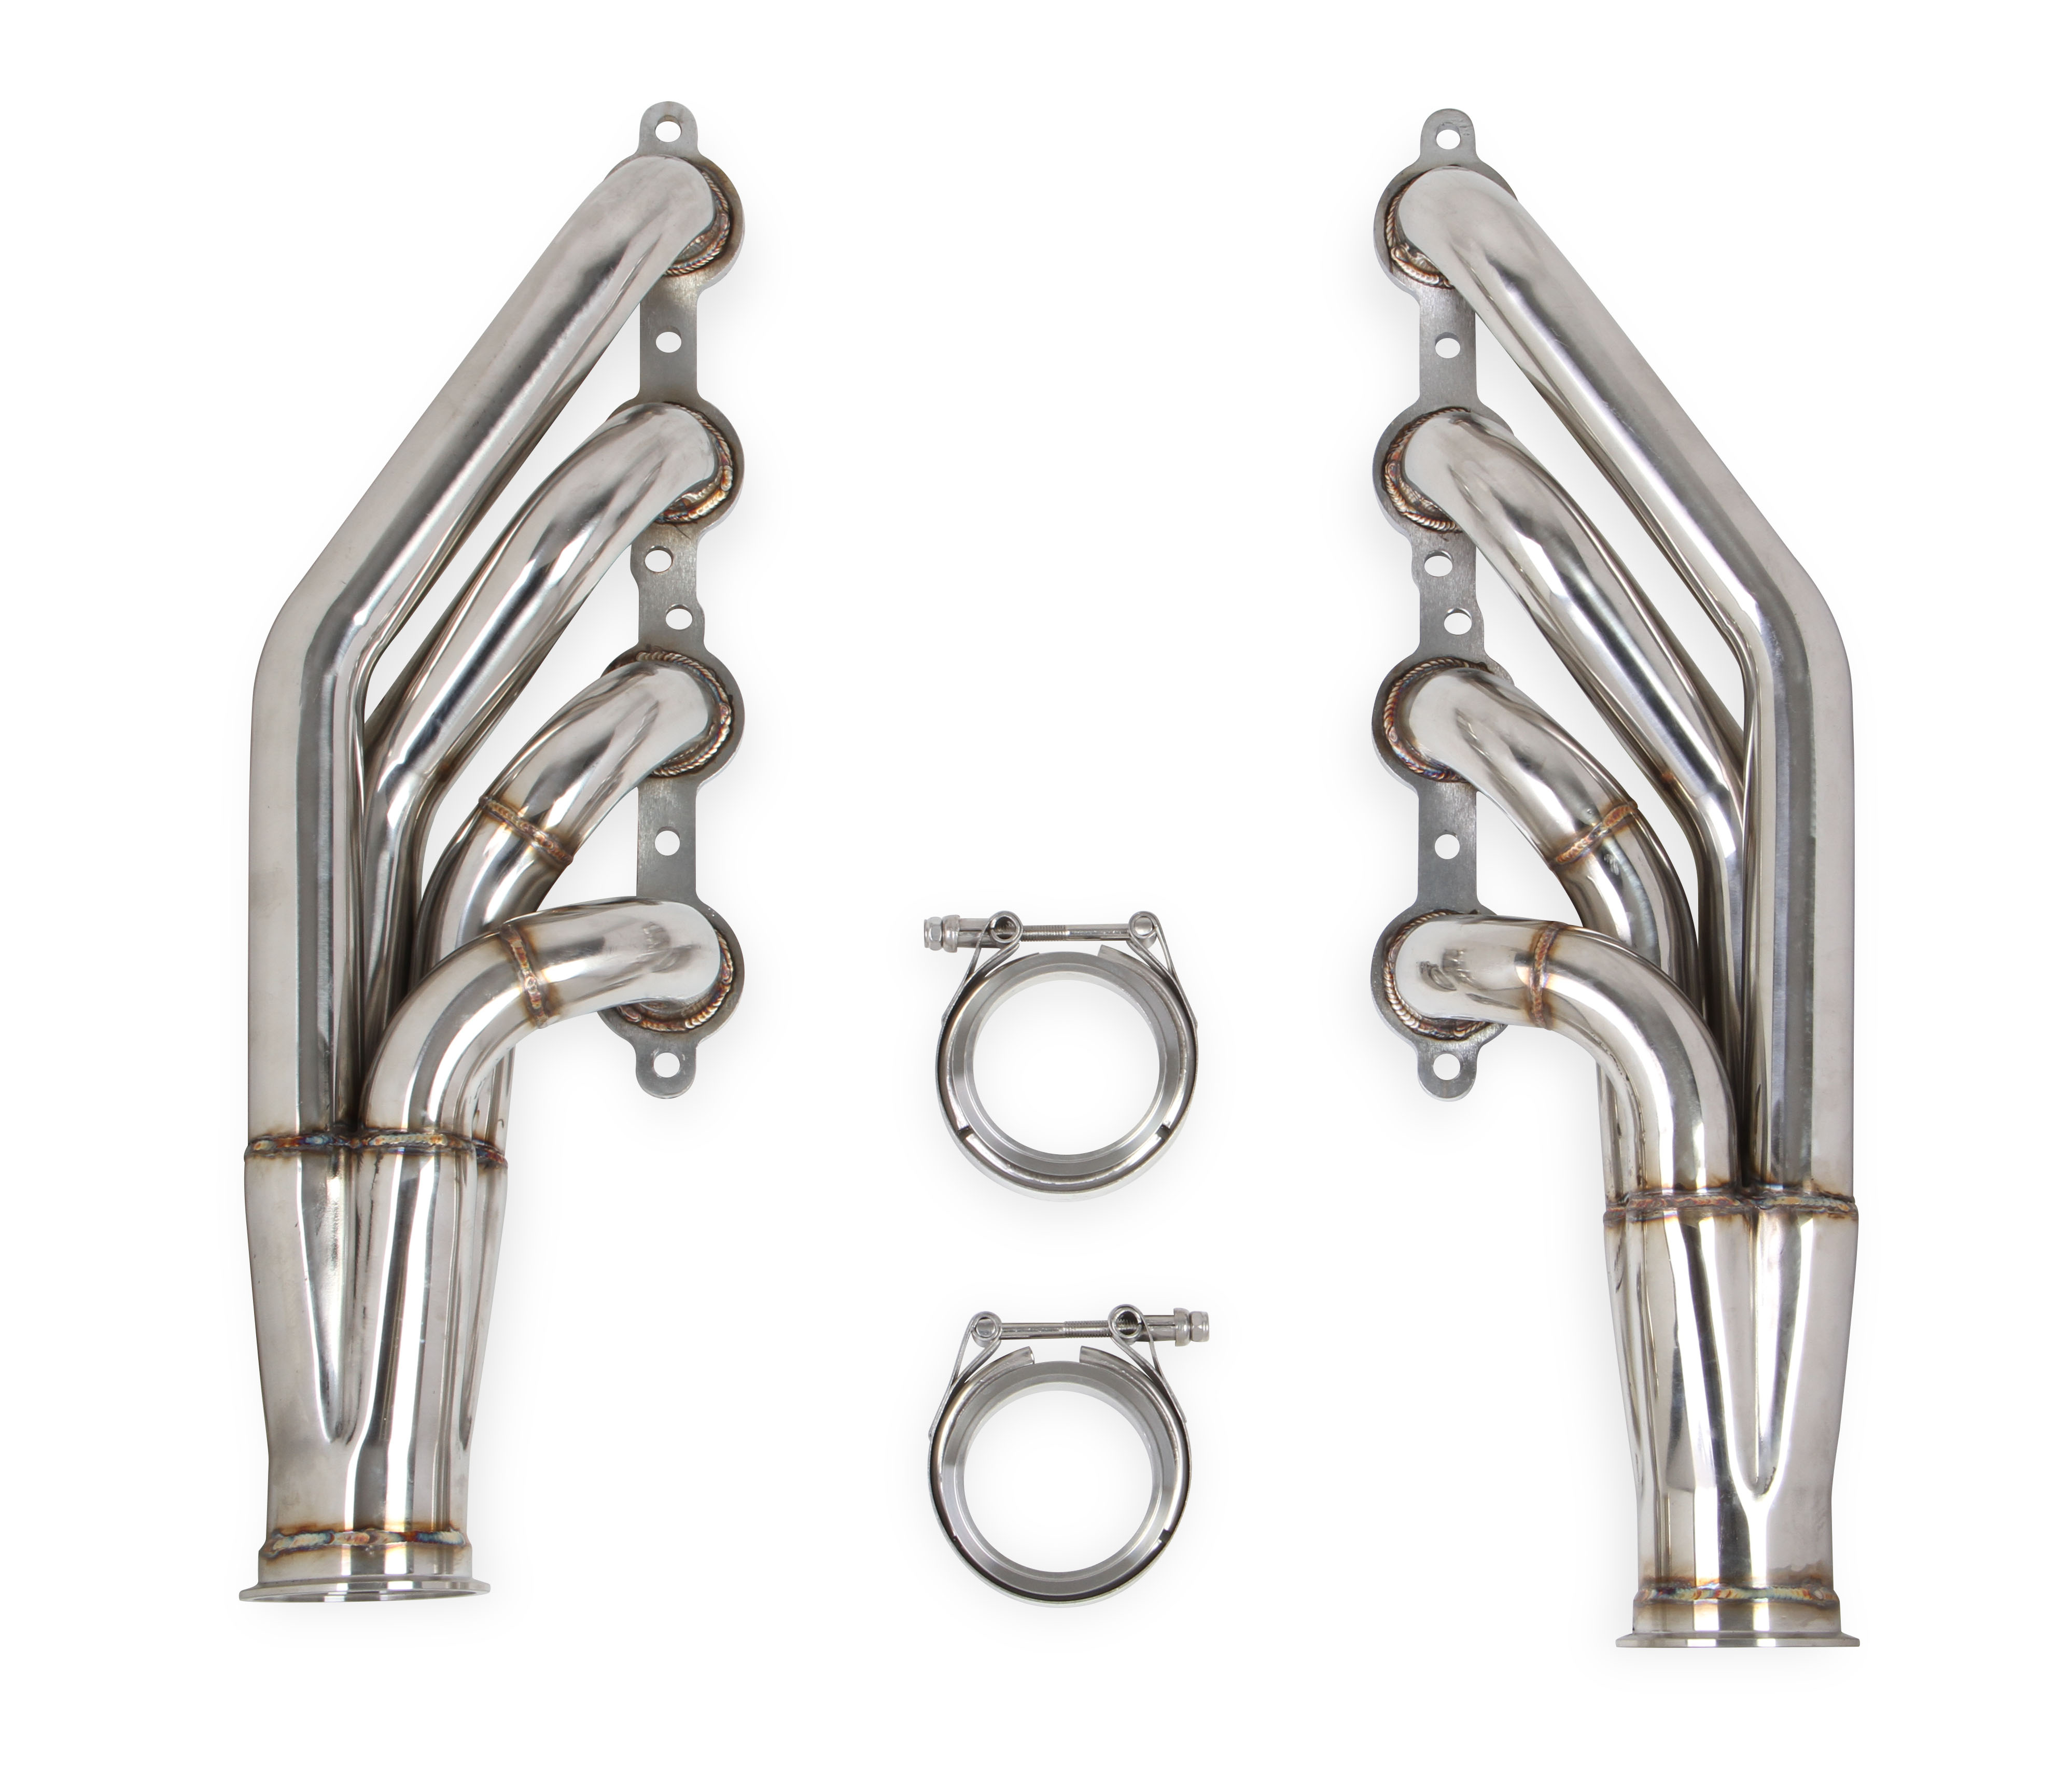 "Flowtech LS 4.8L/5.3L/6.0L V8 1 3/4"" 409 Stainless Turbo Headers - Ceramic Coated"